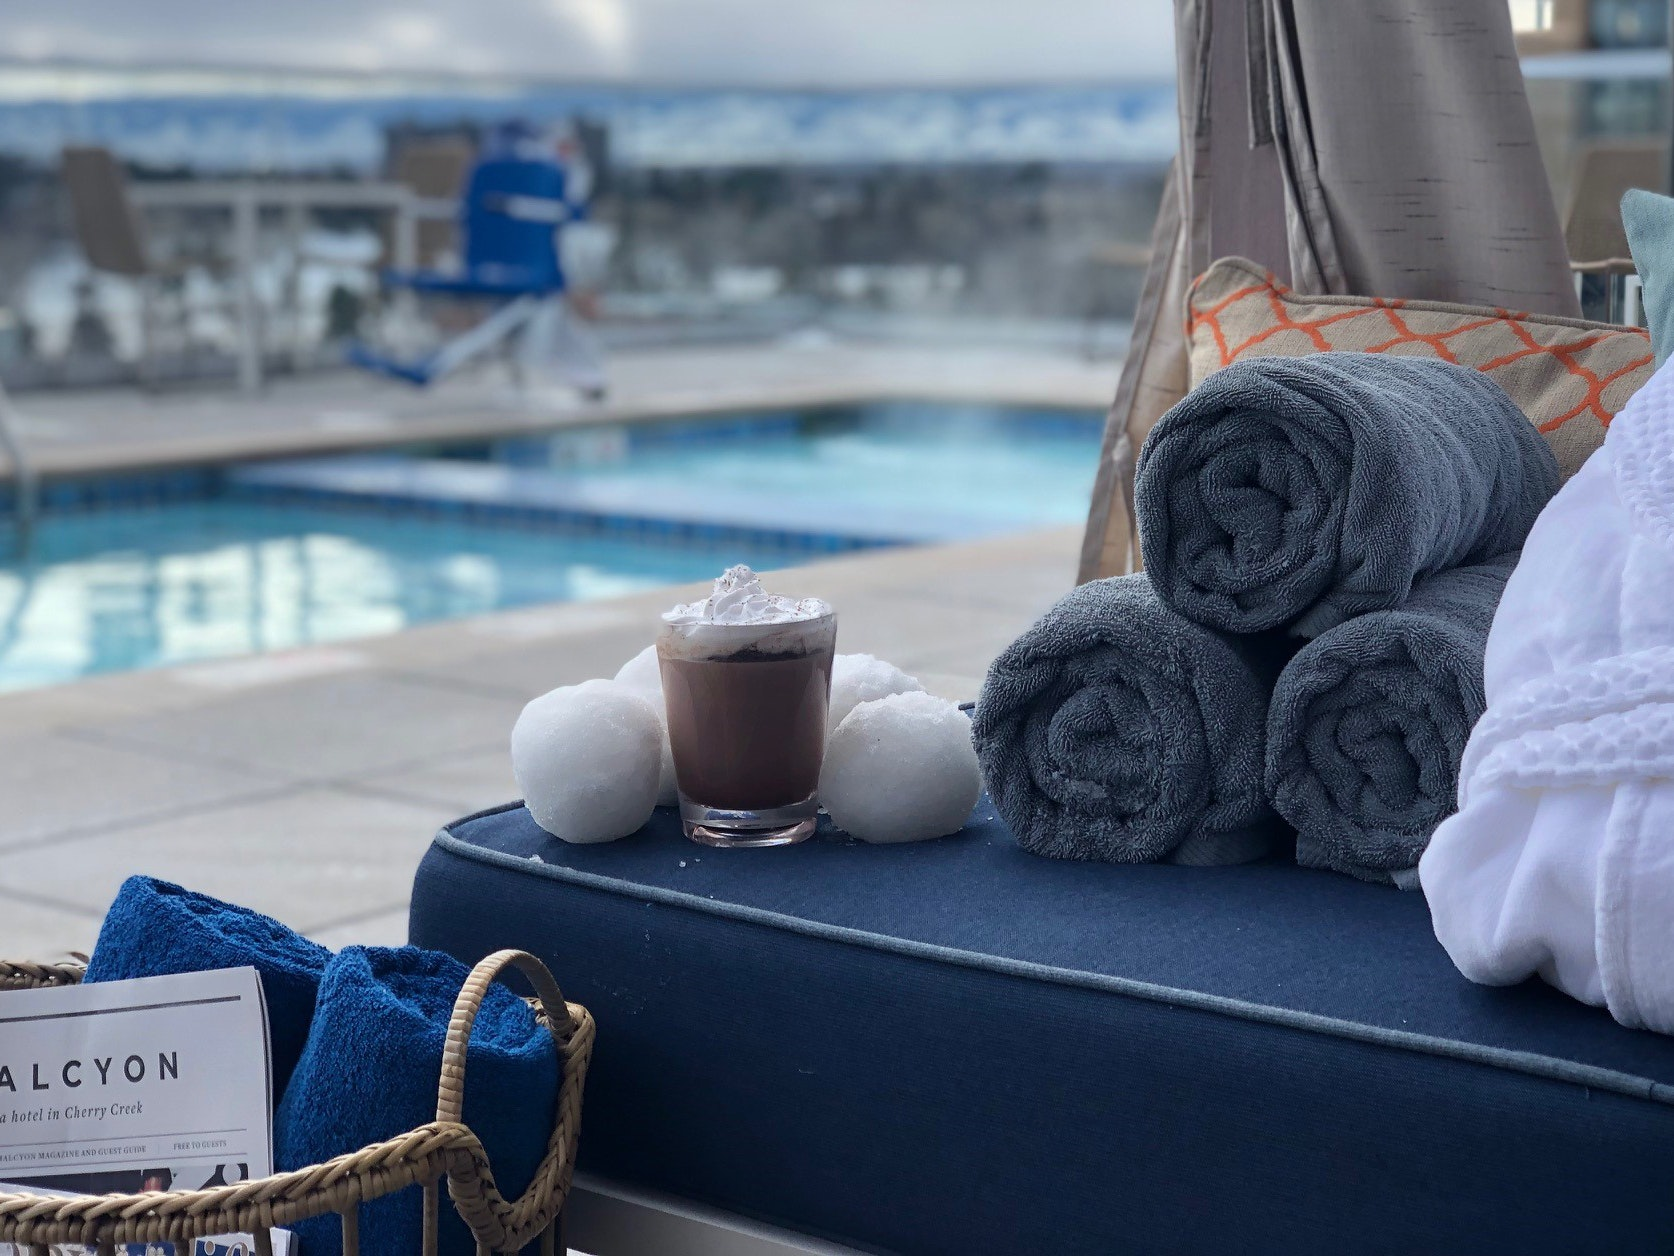 Halcyon Hotel Cherry Creek's rooftop is the place to be in Denver on Friday nights, complete with robes, a hot tub, firepits, and warming drinks.